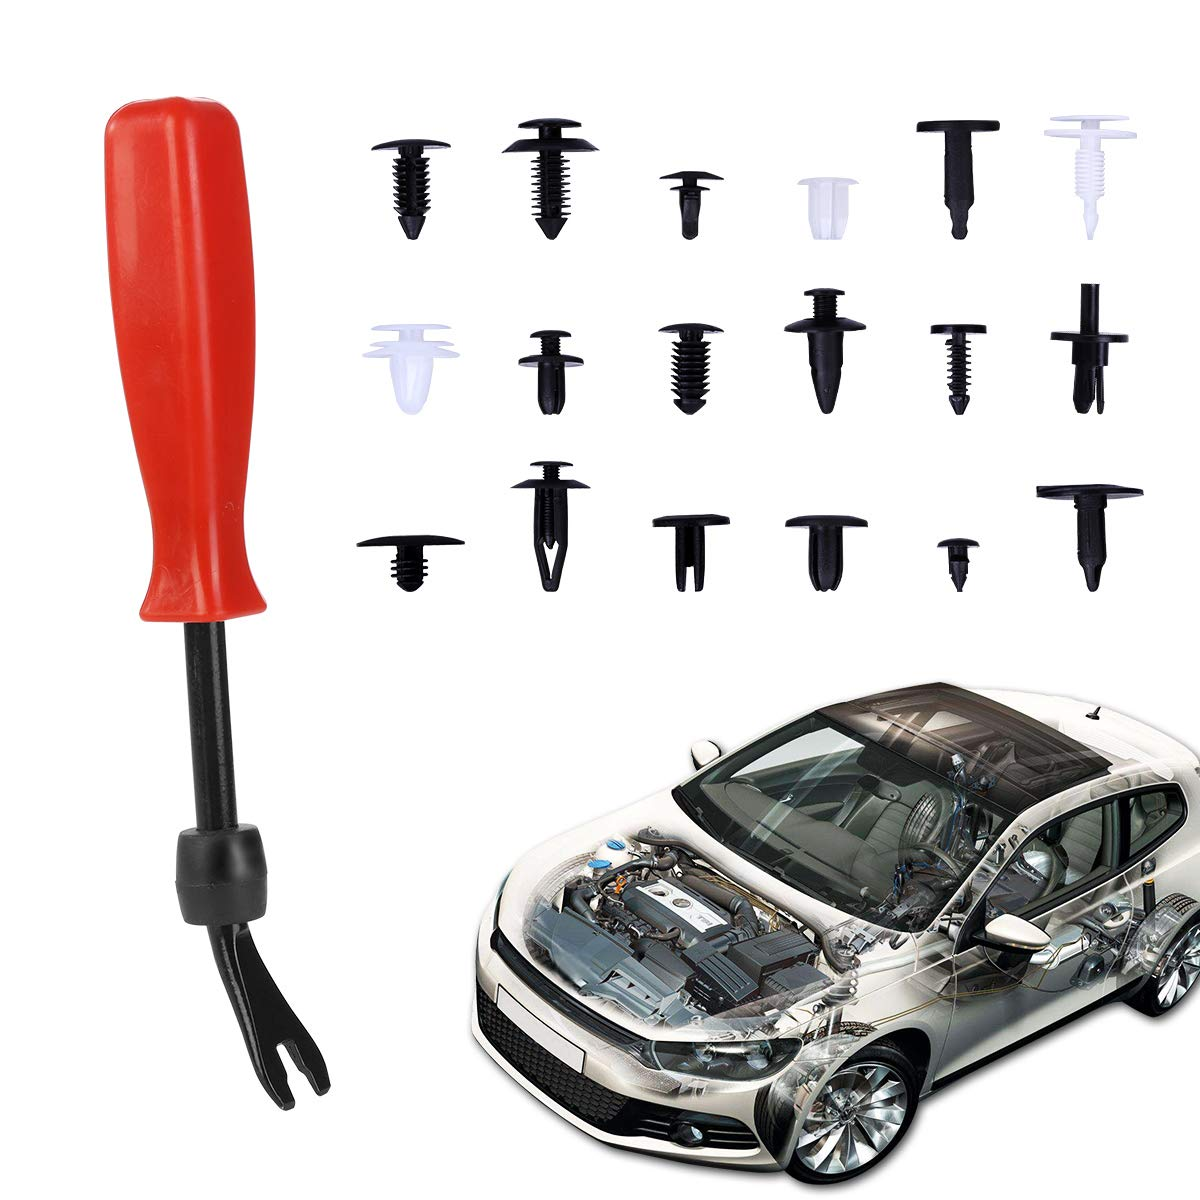 18 Most Popular Sizes Car Retainer Clips Kit Auto Push Rivets Clips for GM Ford Toyota Honda 415 Pcs Plastic Car Body Pins with Fastener Remover